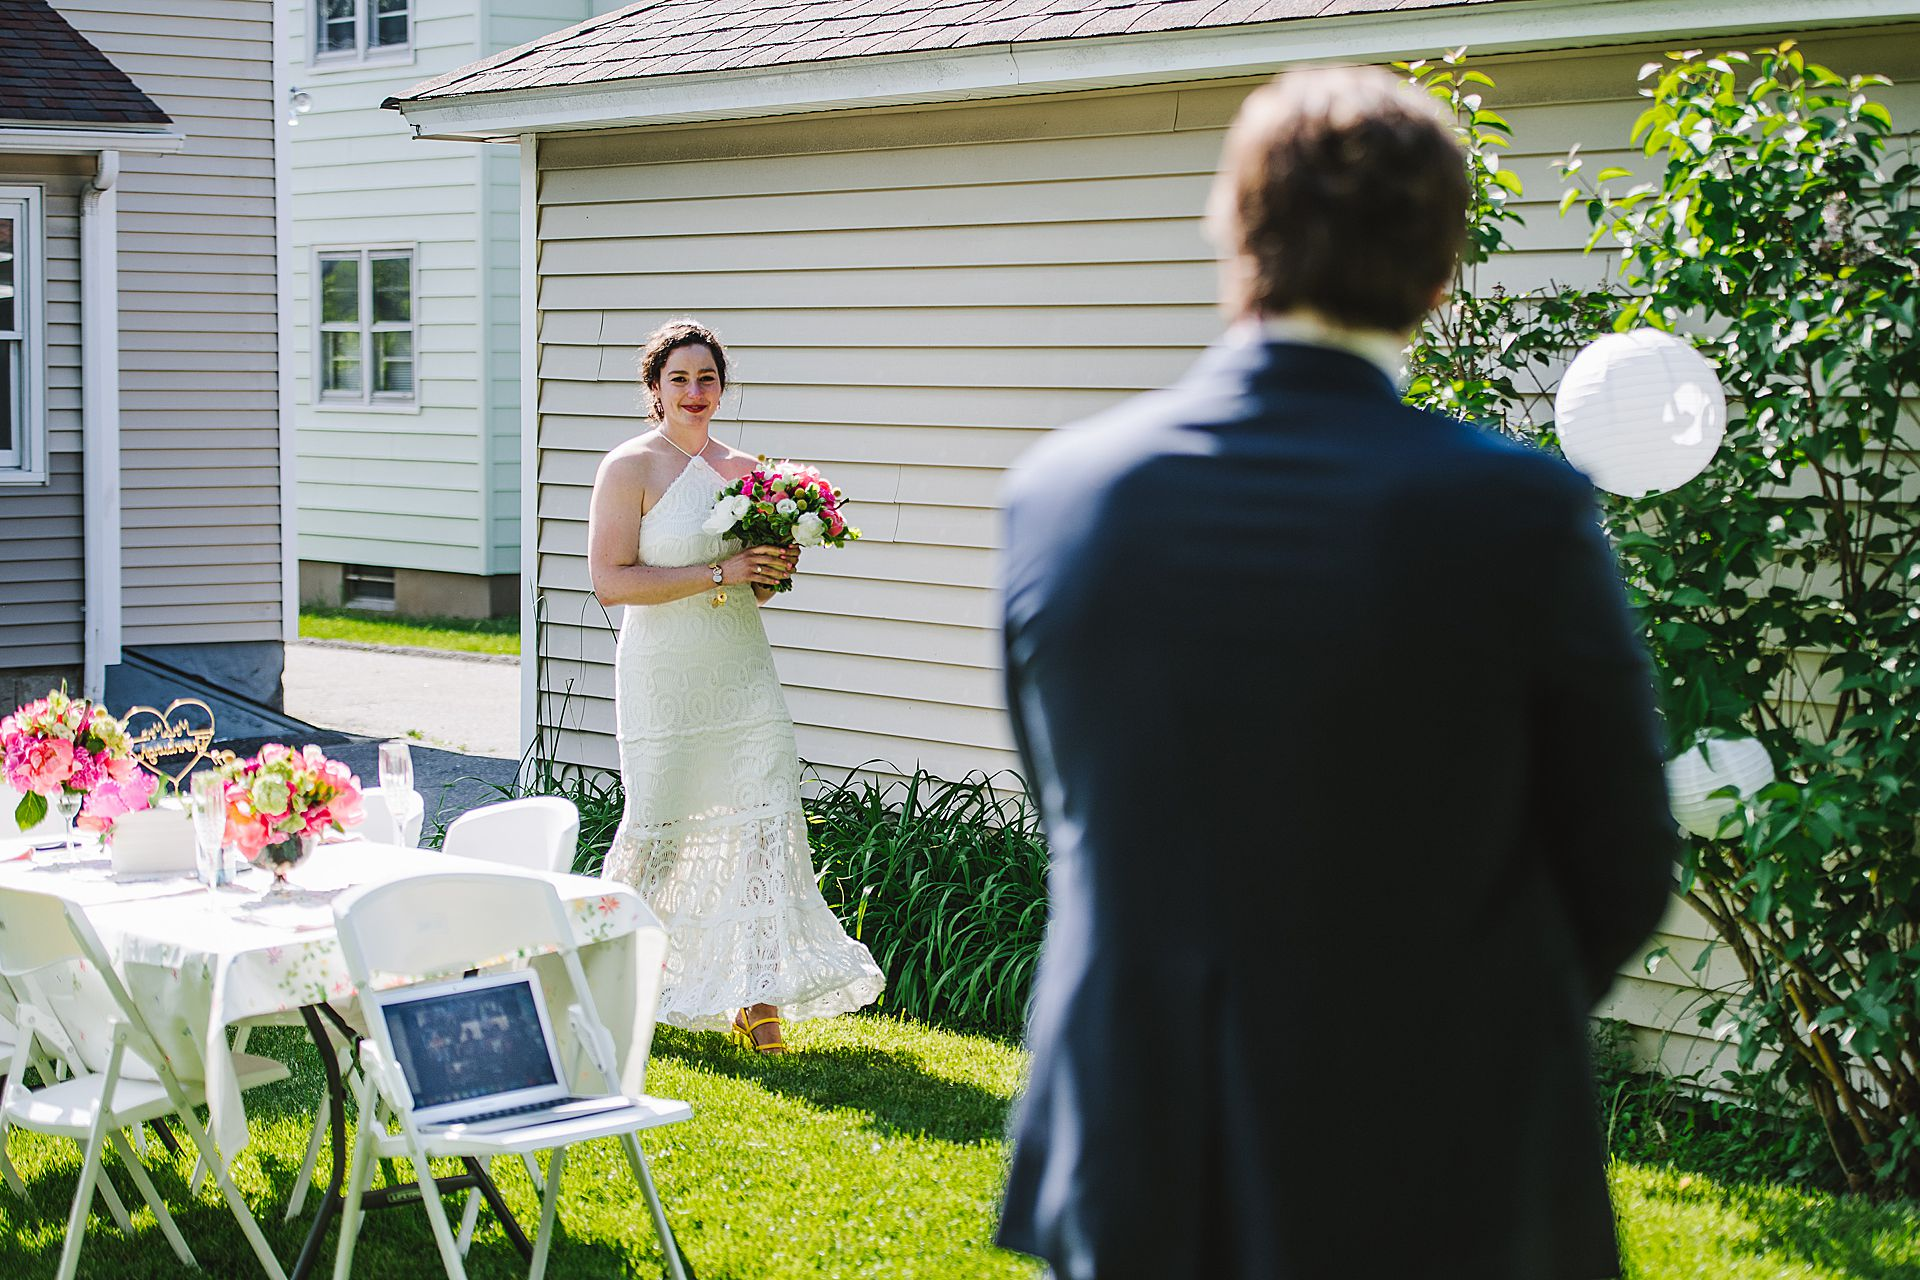 Backyard Wedding Photo in Norwalk, CT | The bride is Carrying a bright bouquet of flowers